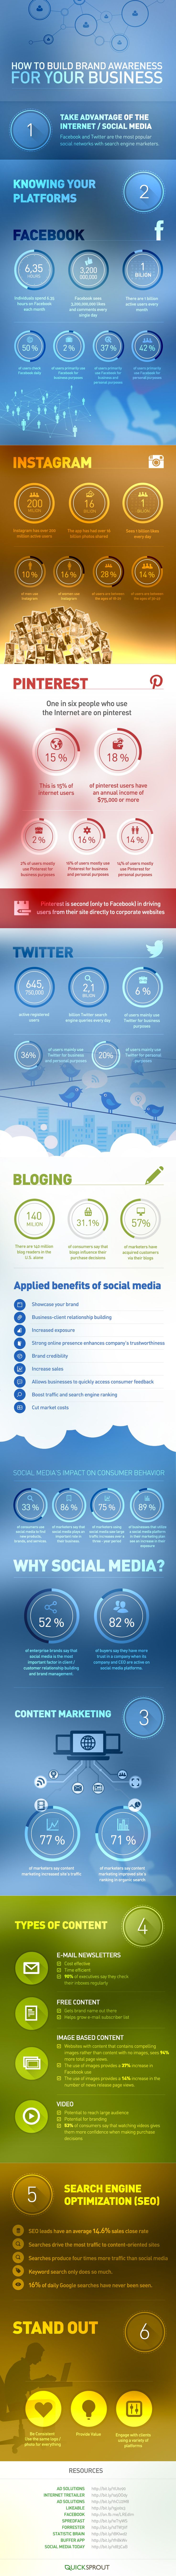 How To Build Brand Awareness for Your Business - Infographic by QuickSprout.com